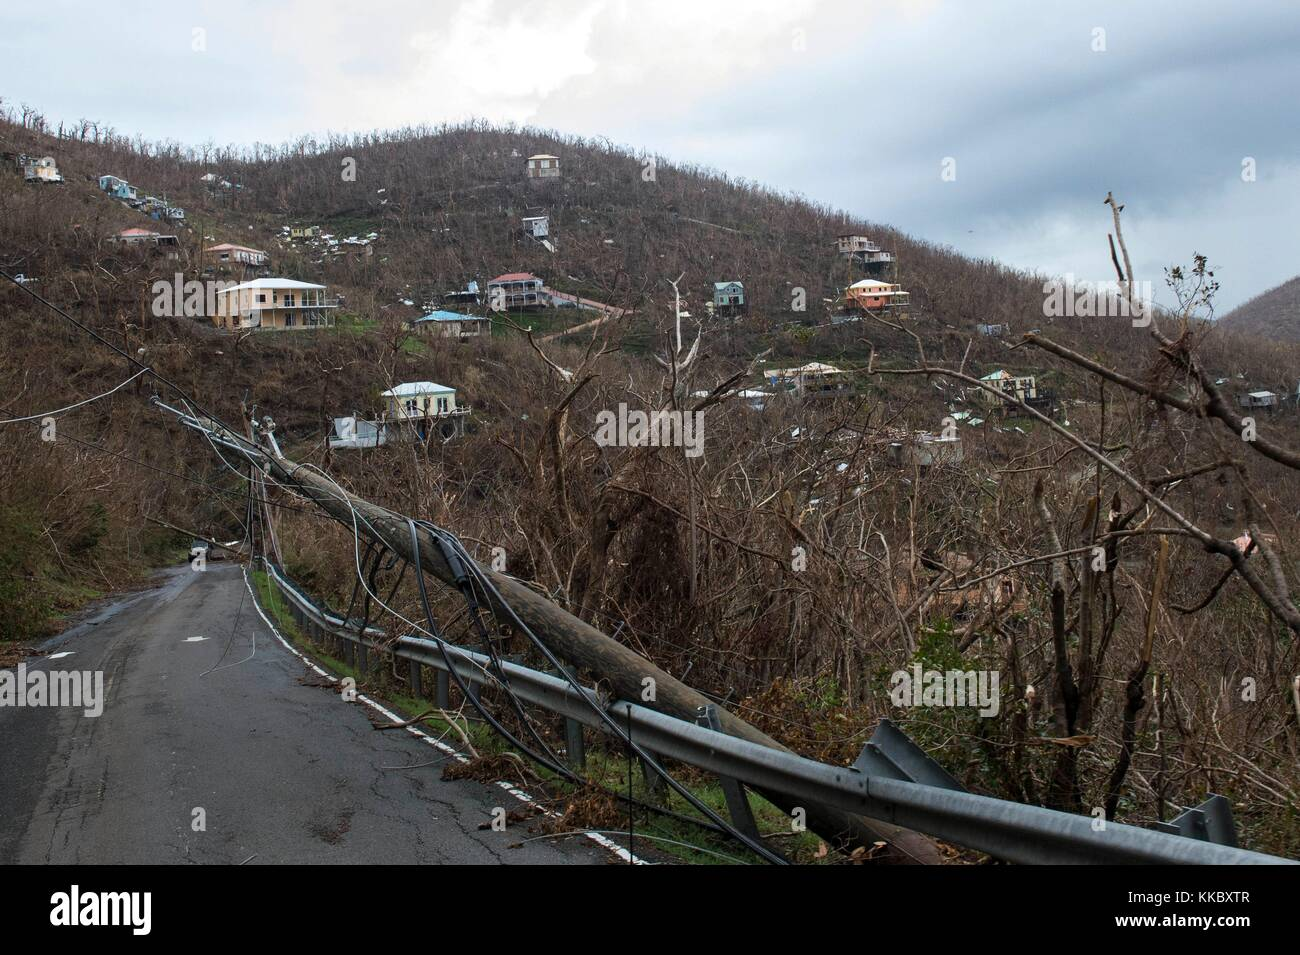 Debris and damaged homes in the aftermath of Hurricane Irma September 14, 2017 in St. John, U.S. Virgin Islands. - Stock Image